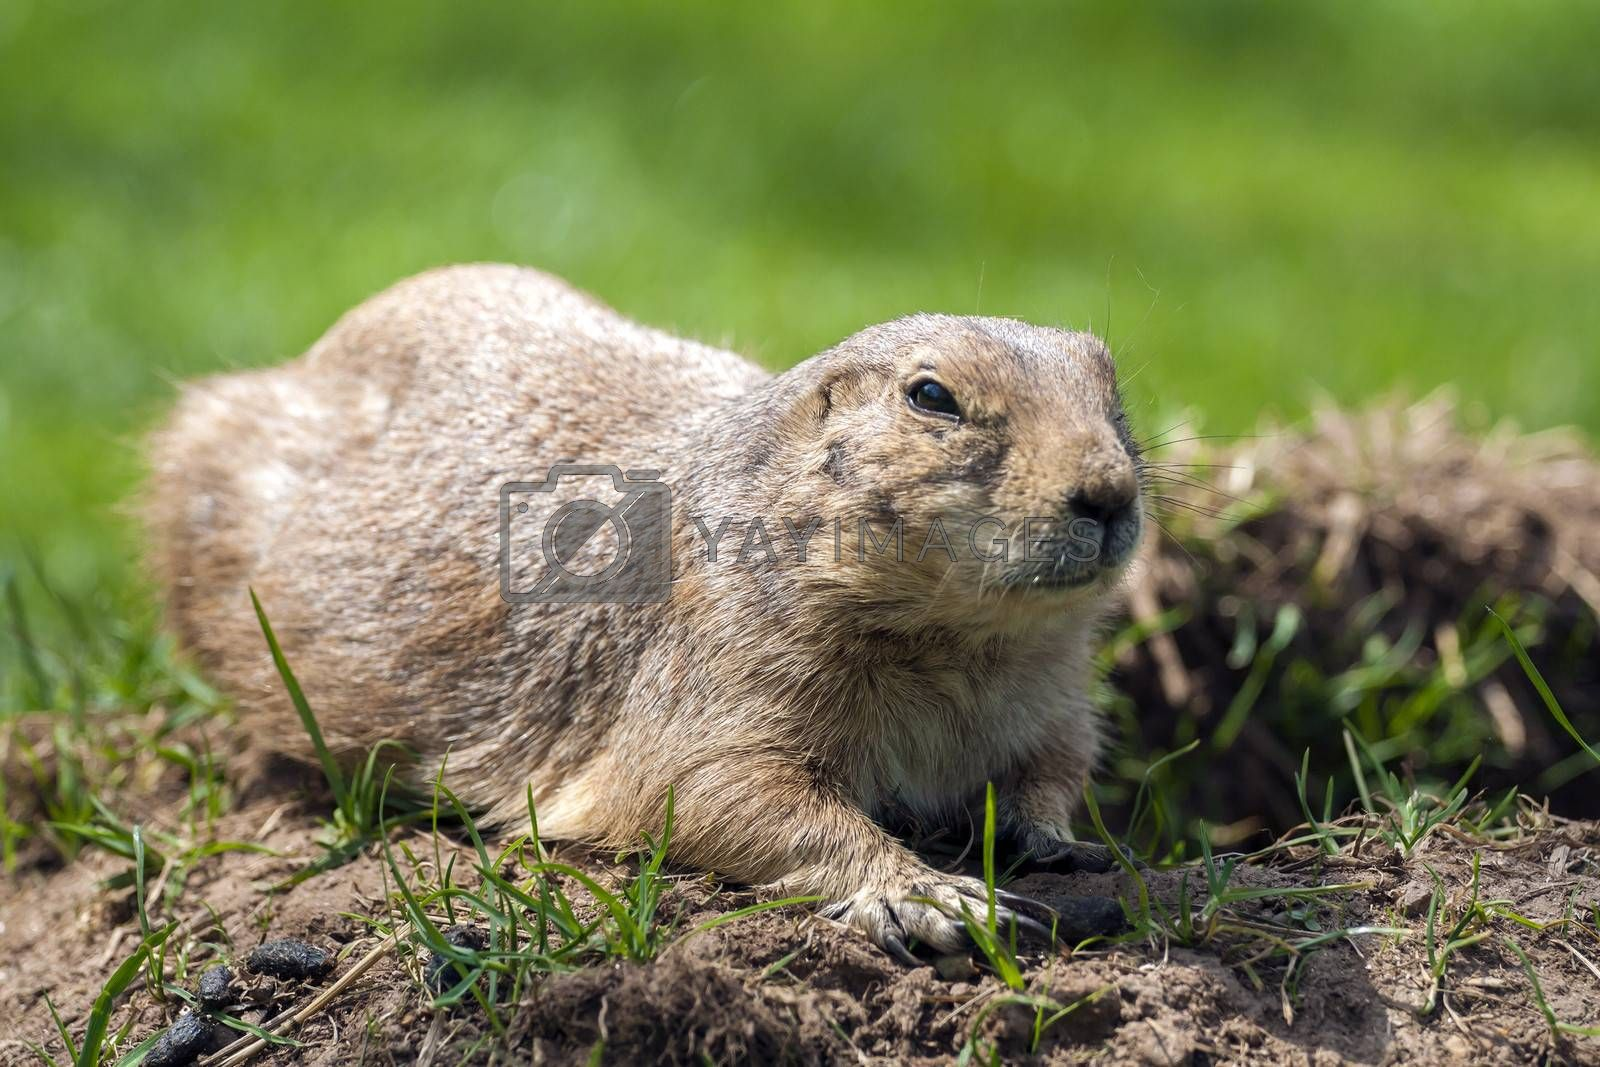 Cynomys ludovicianus or Prairie dog on the grass